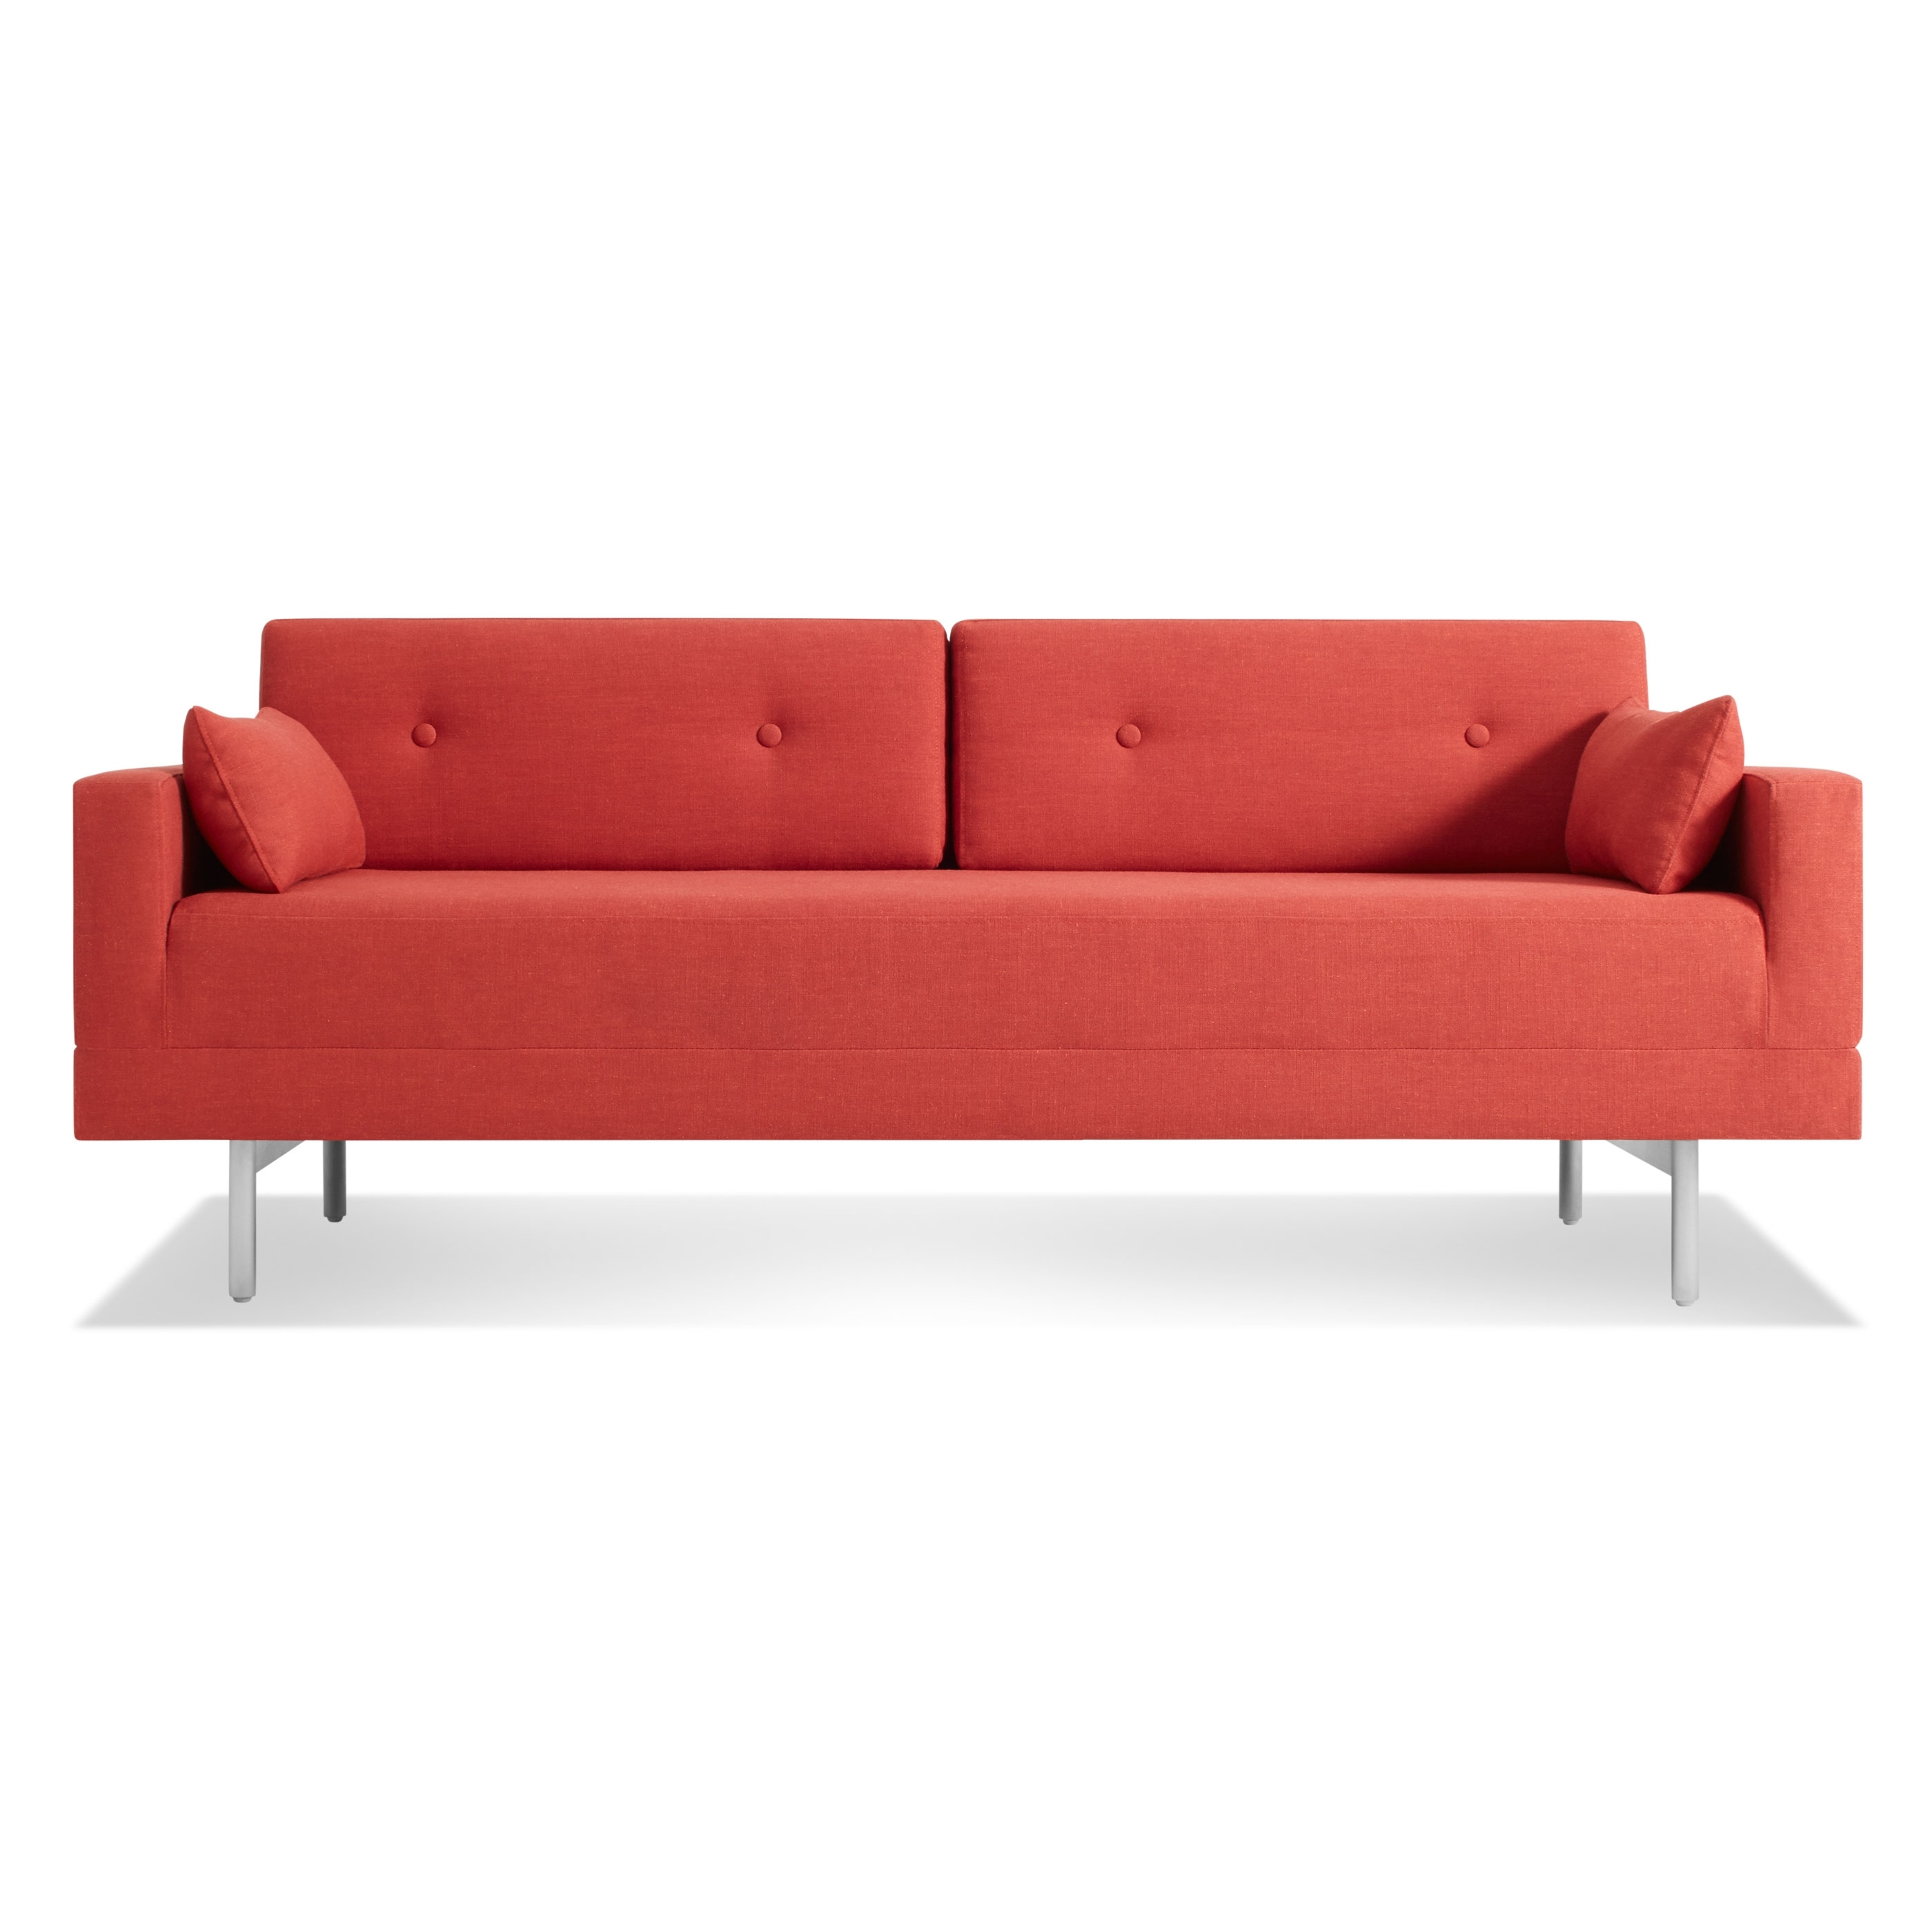 One Night Stand Sleeper Sofa – Modern Seating – Blu Dot Pertaining To Red Sleeper Sofas (Image 8 of 12)